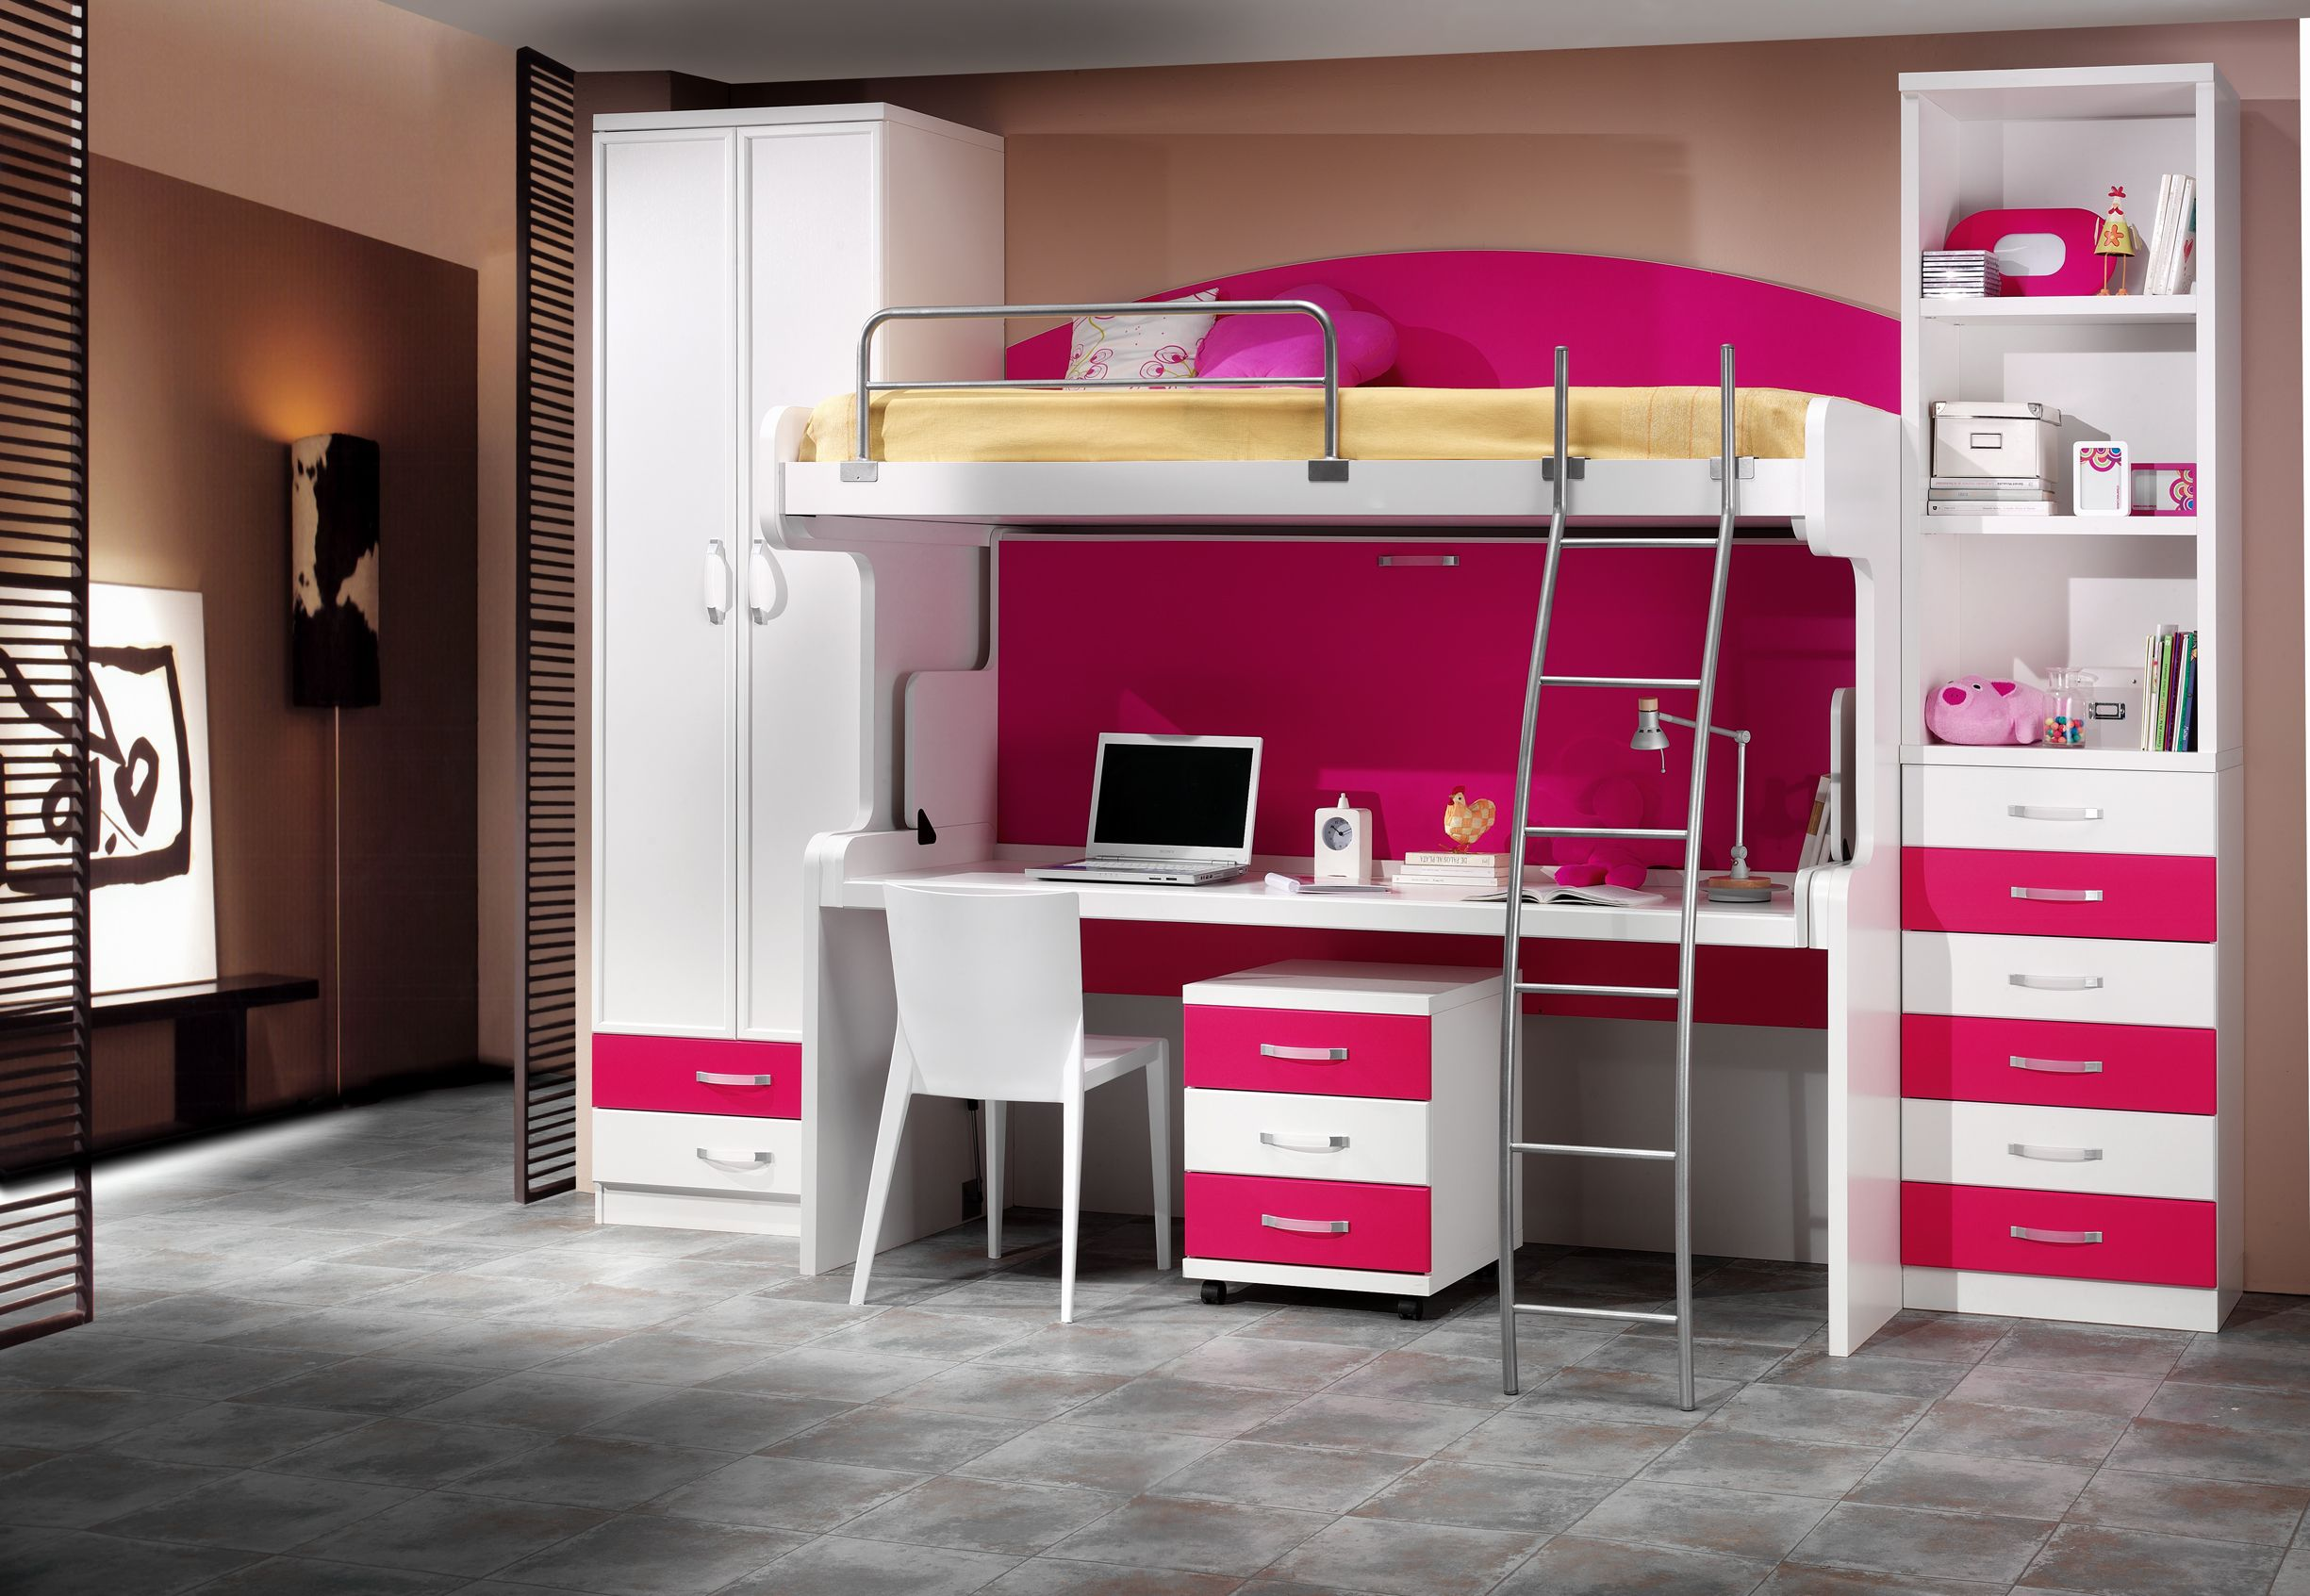 The Space Saving Desk Bed In 2020 Cool Bunk Beds Bunk Beds